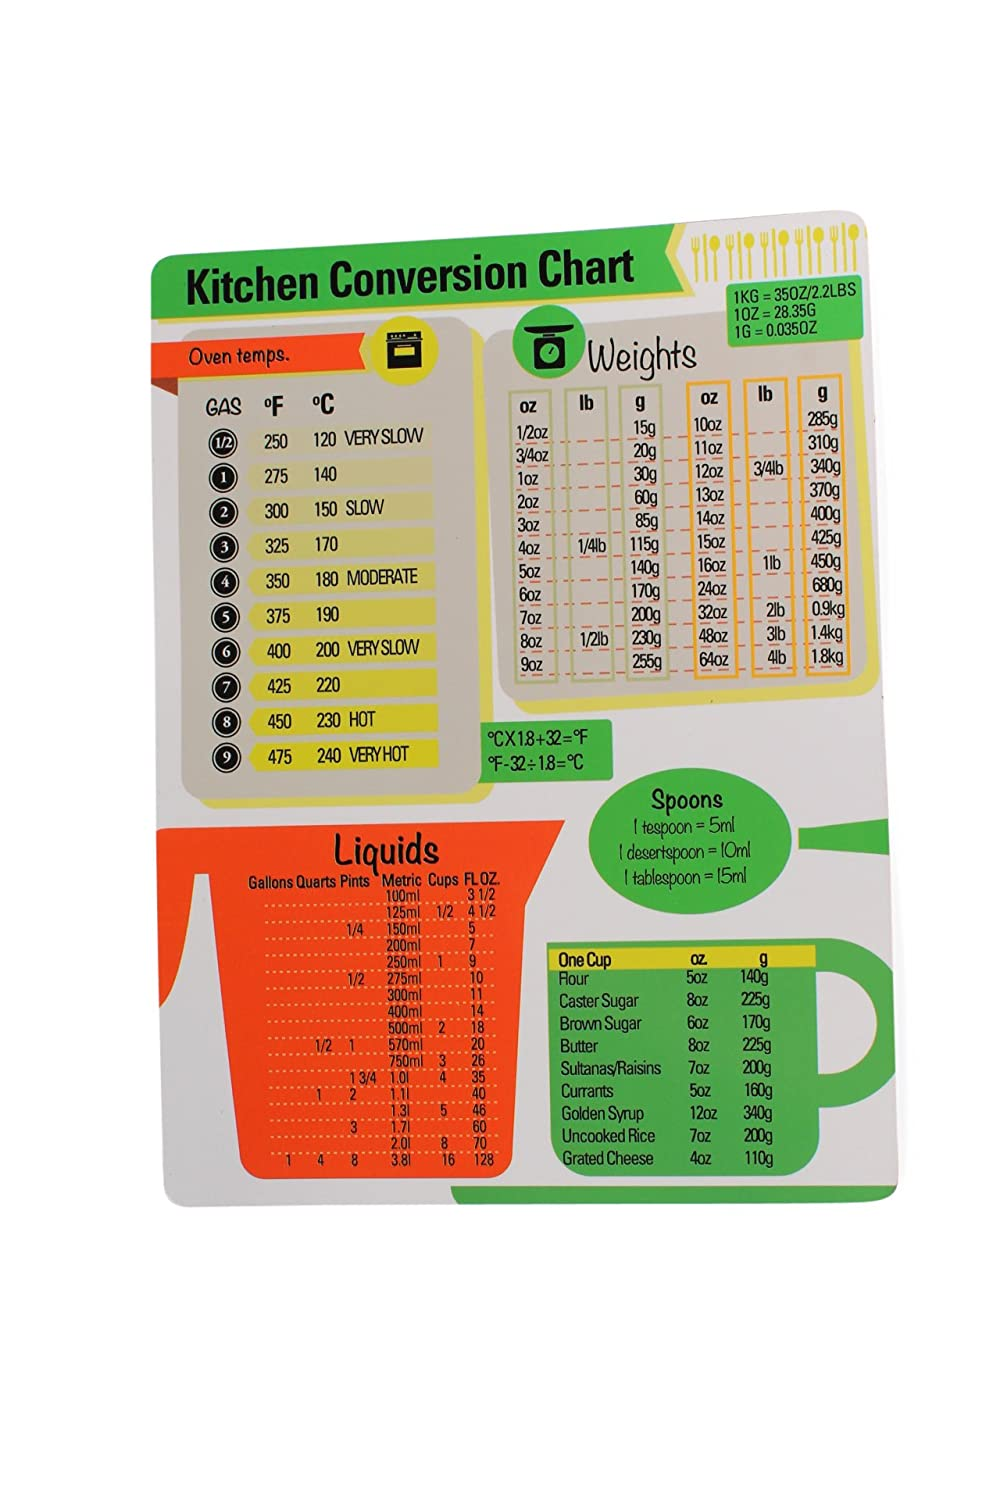 Metric conversion chart fridge magnet 6 x 8 includes weight metric conversion chart fridge magnet 6 x 8 includes weight conversion chart measurement conversion chart liquid conversion chart and temperature nvjuhfo Images